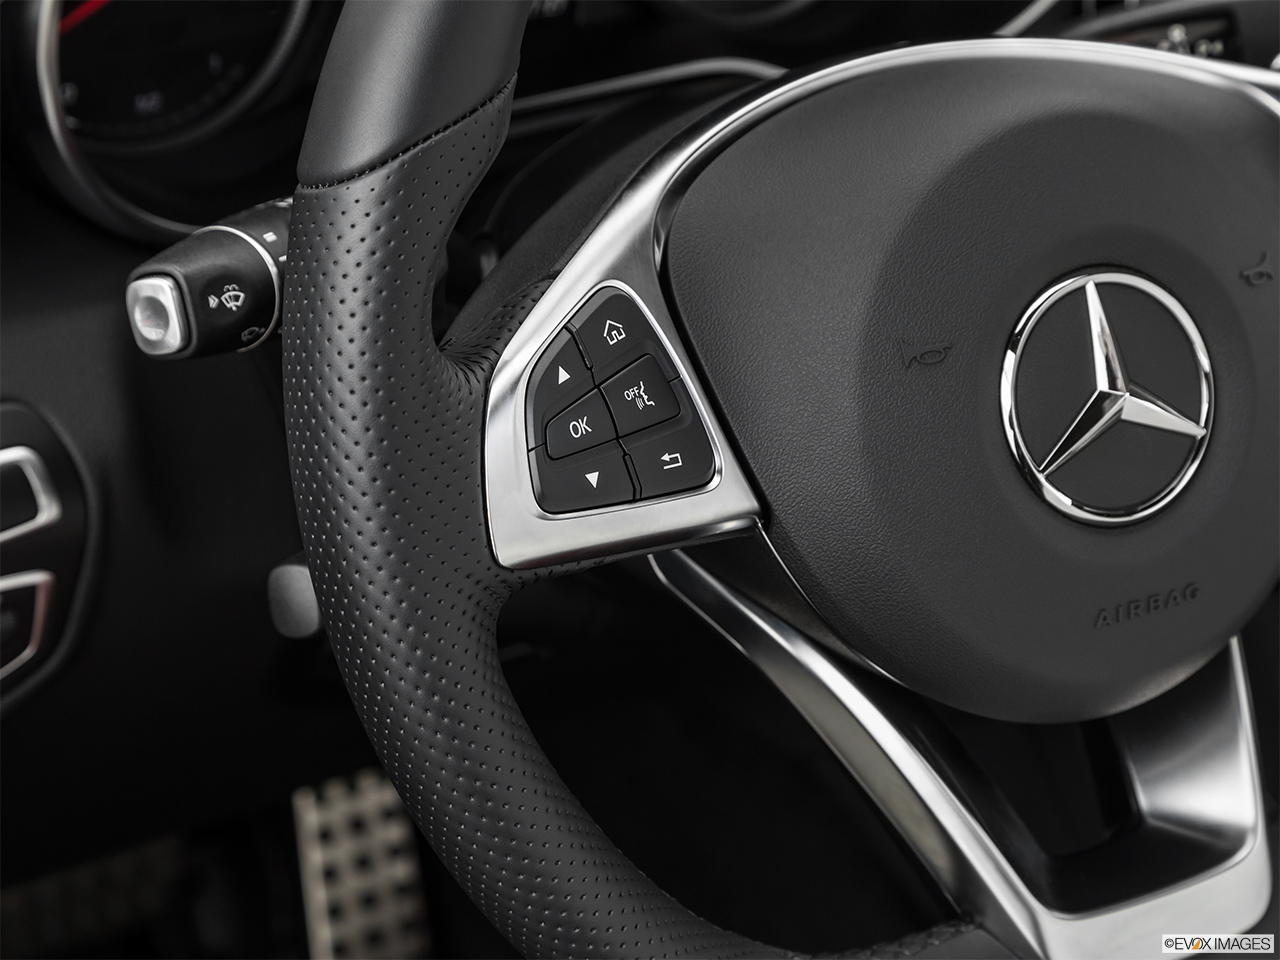 2019 Mercedes-Benz GLC-Class Coupe GLC 300 4MATIC Steering Wheel Controls (Left Side)